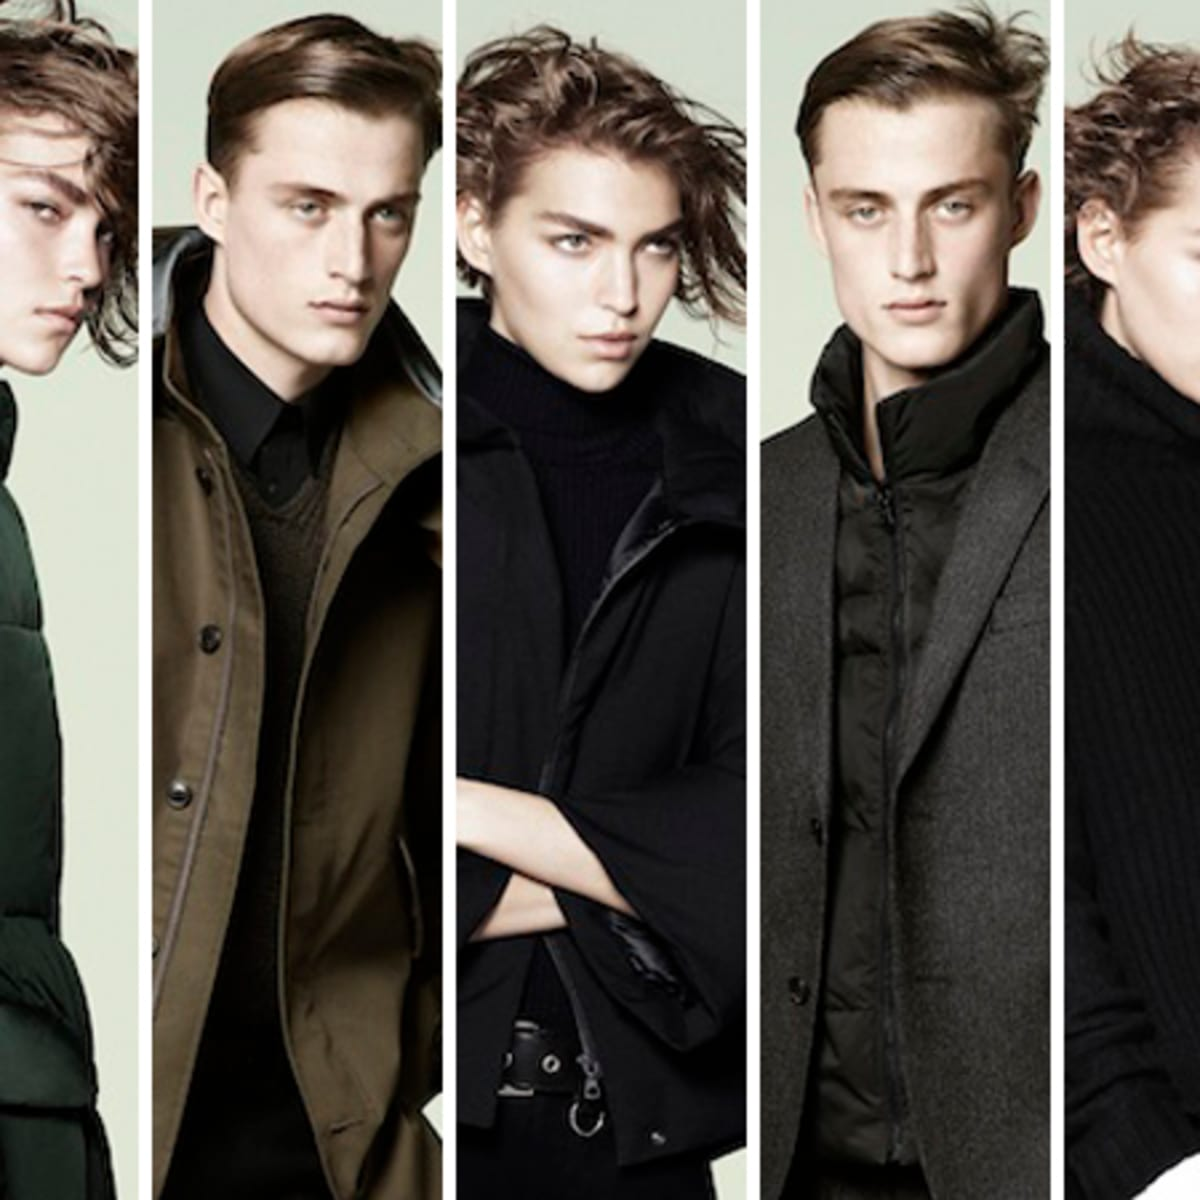 Jil Sander x UNIQLO +J Collection - Fall/Winter 2011 | Preview - Freshness  Mag